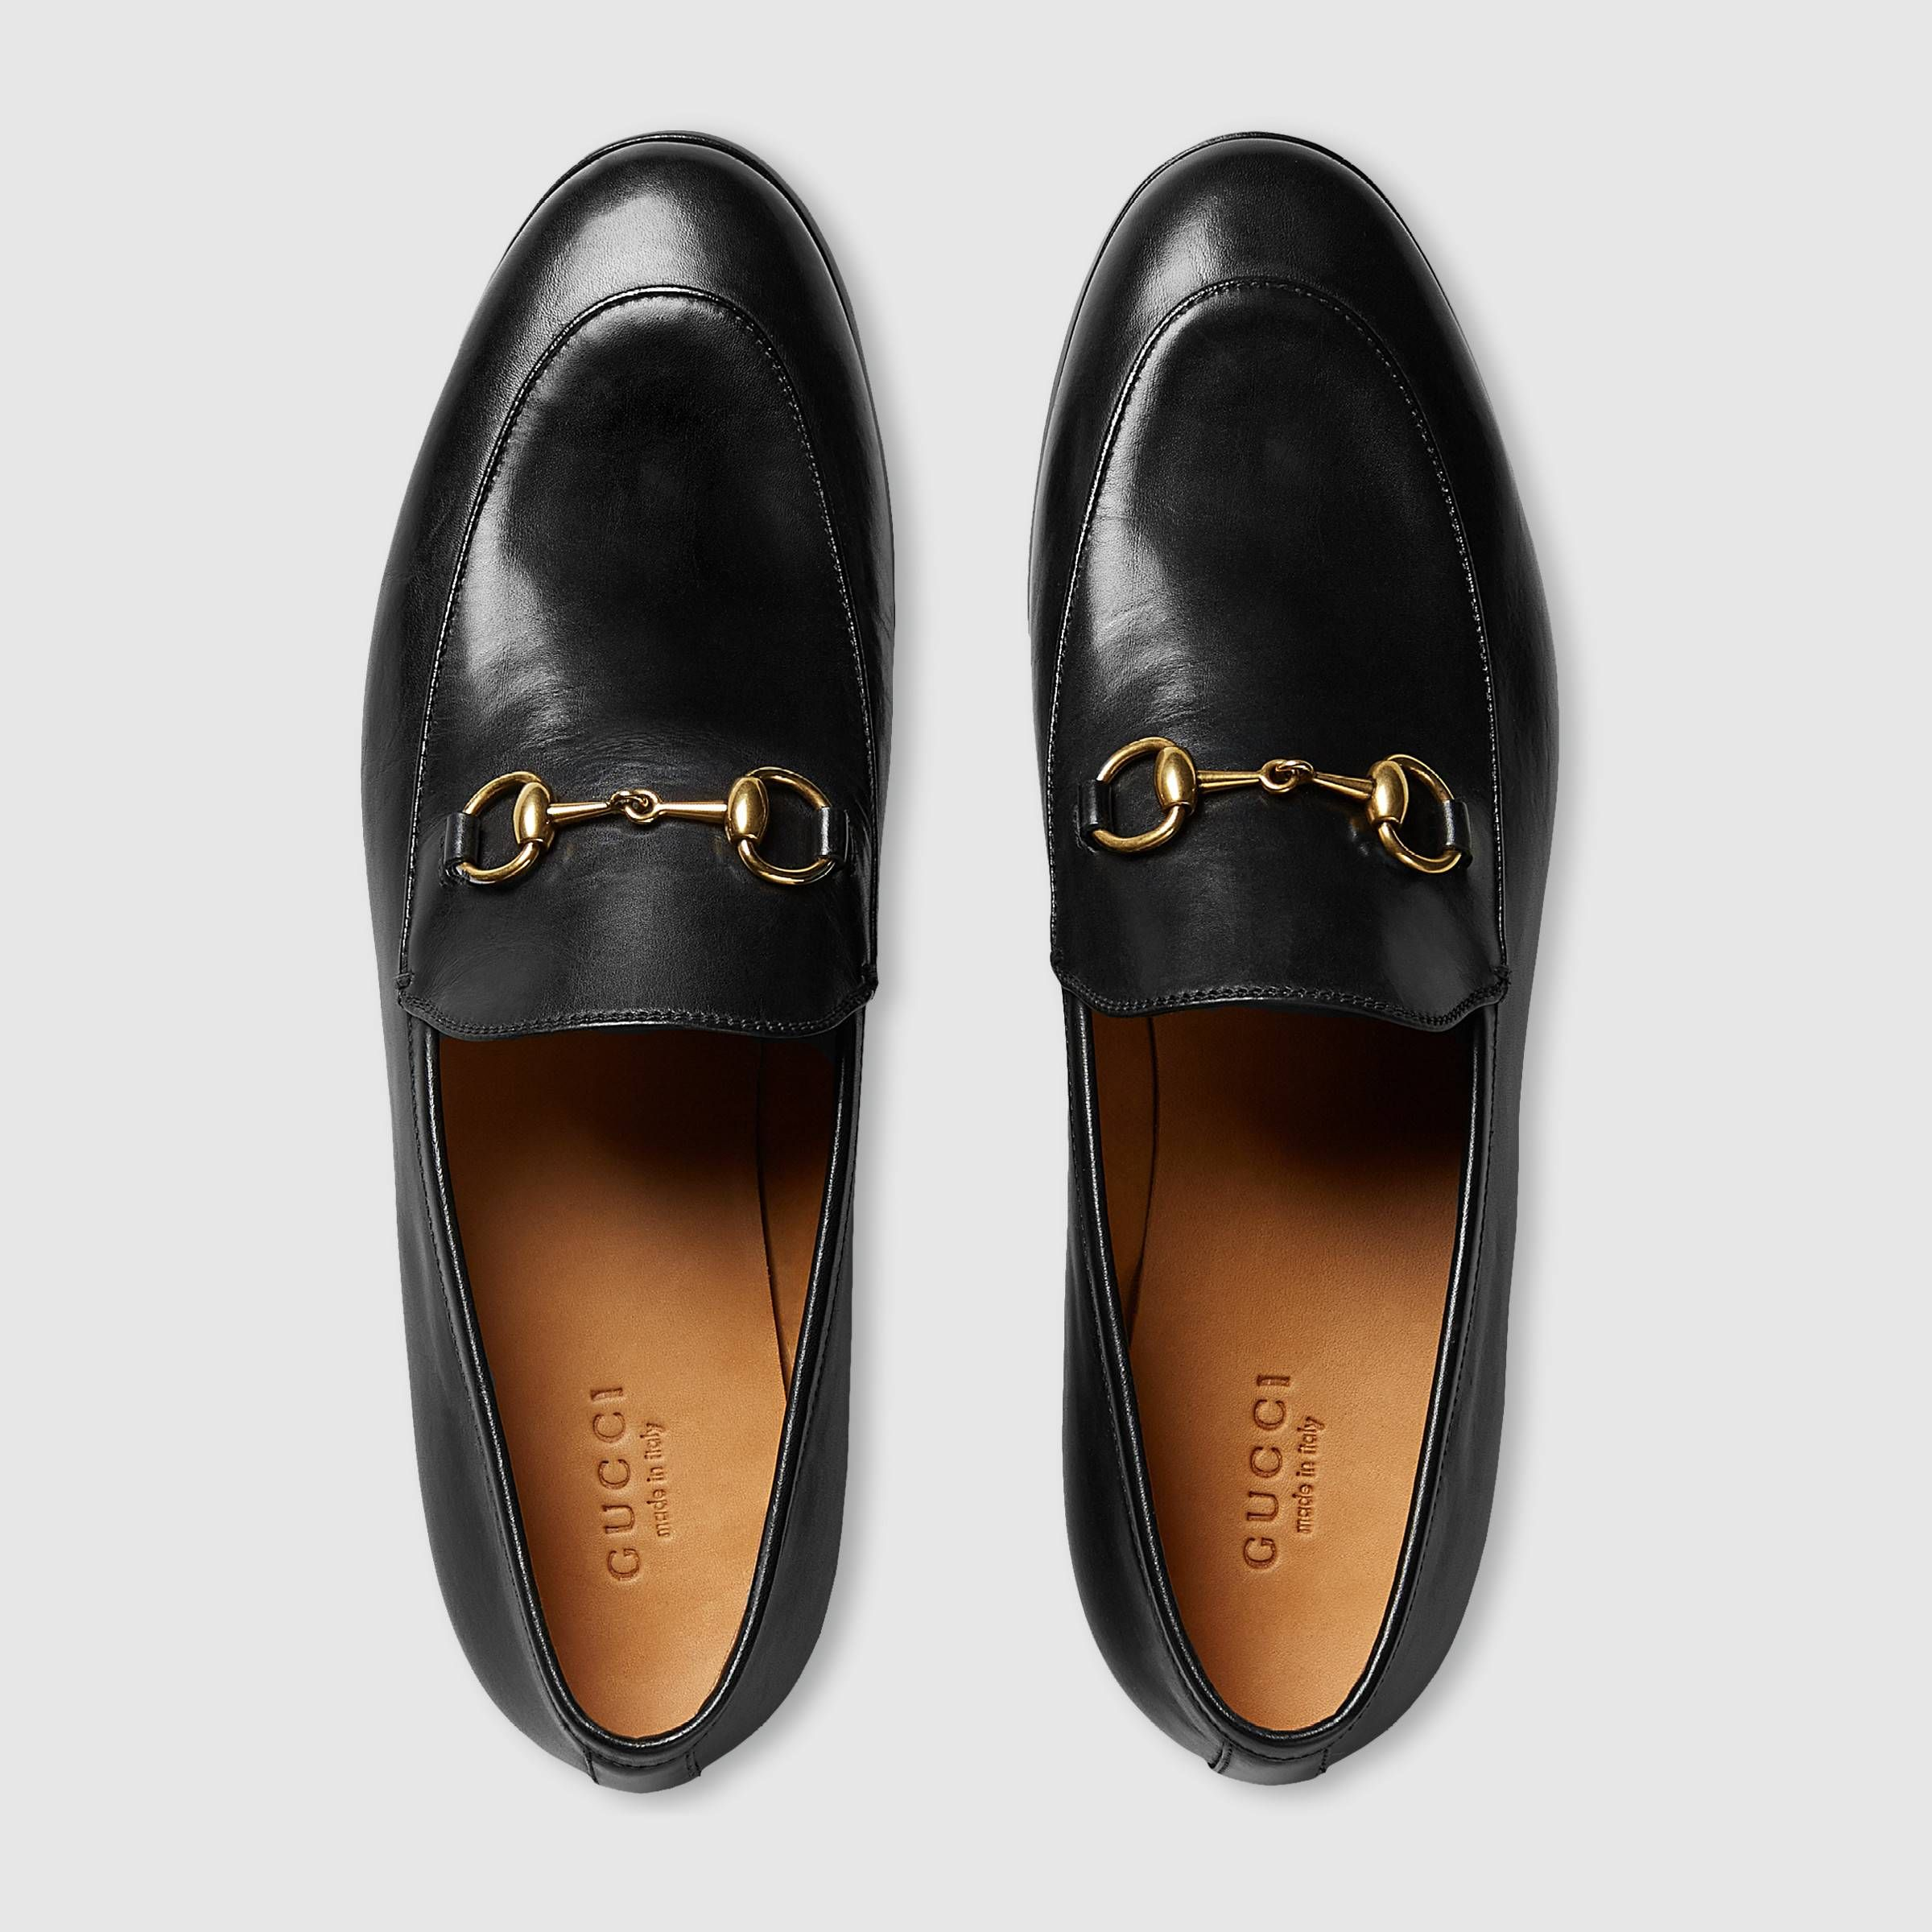 5f9df63628c Gucci Jordaan leather loafer in Black leather